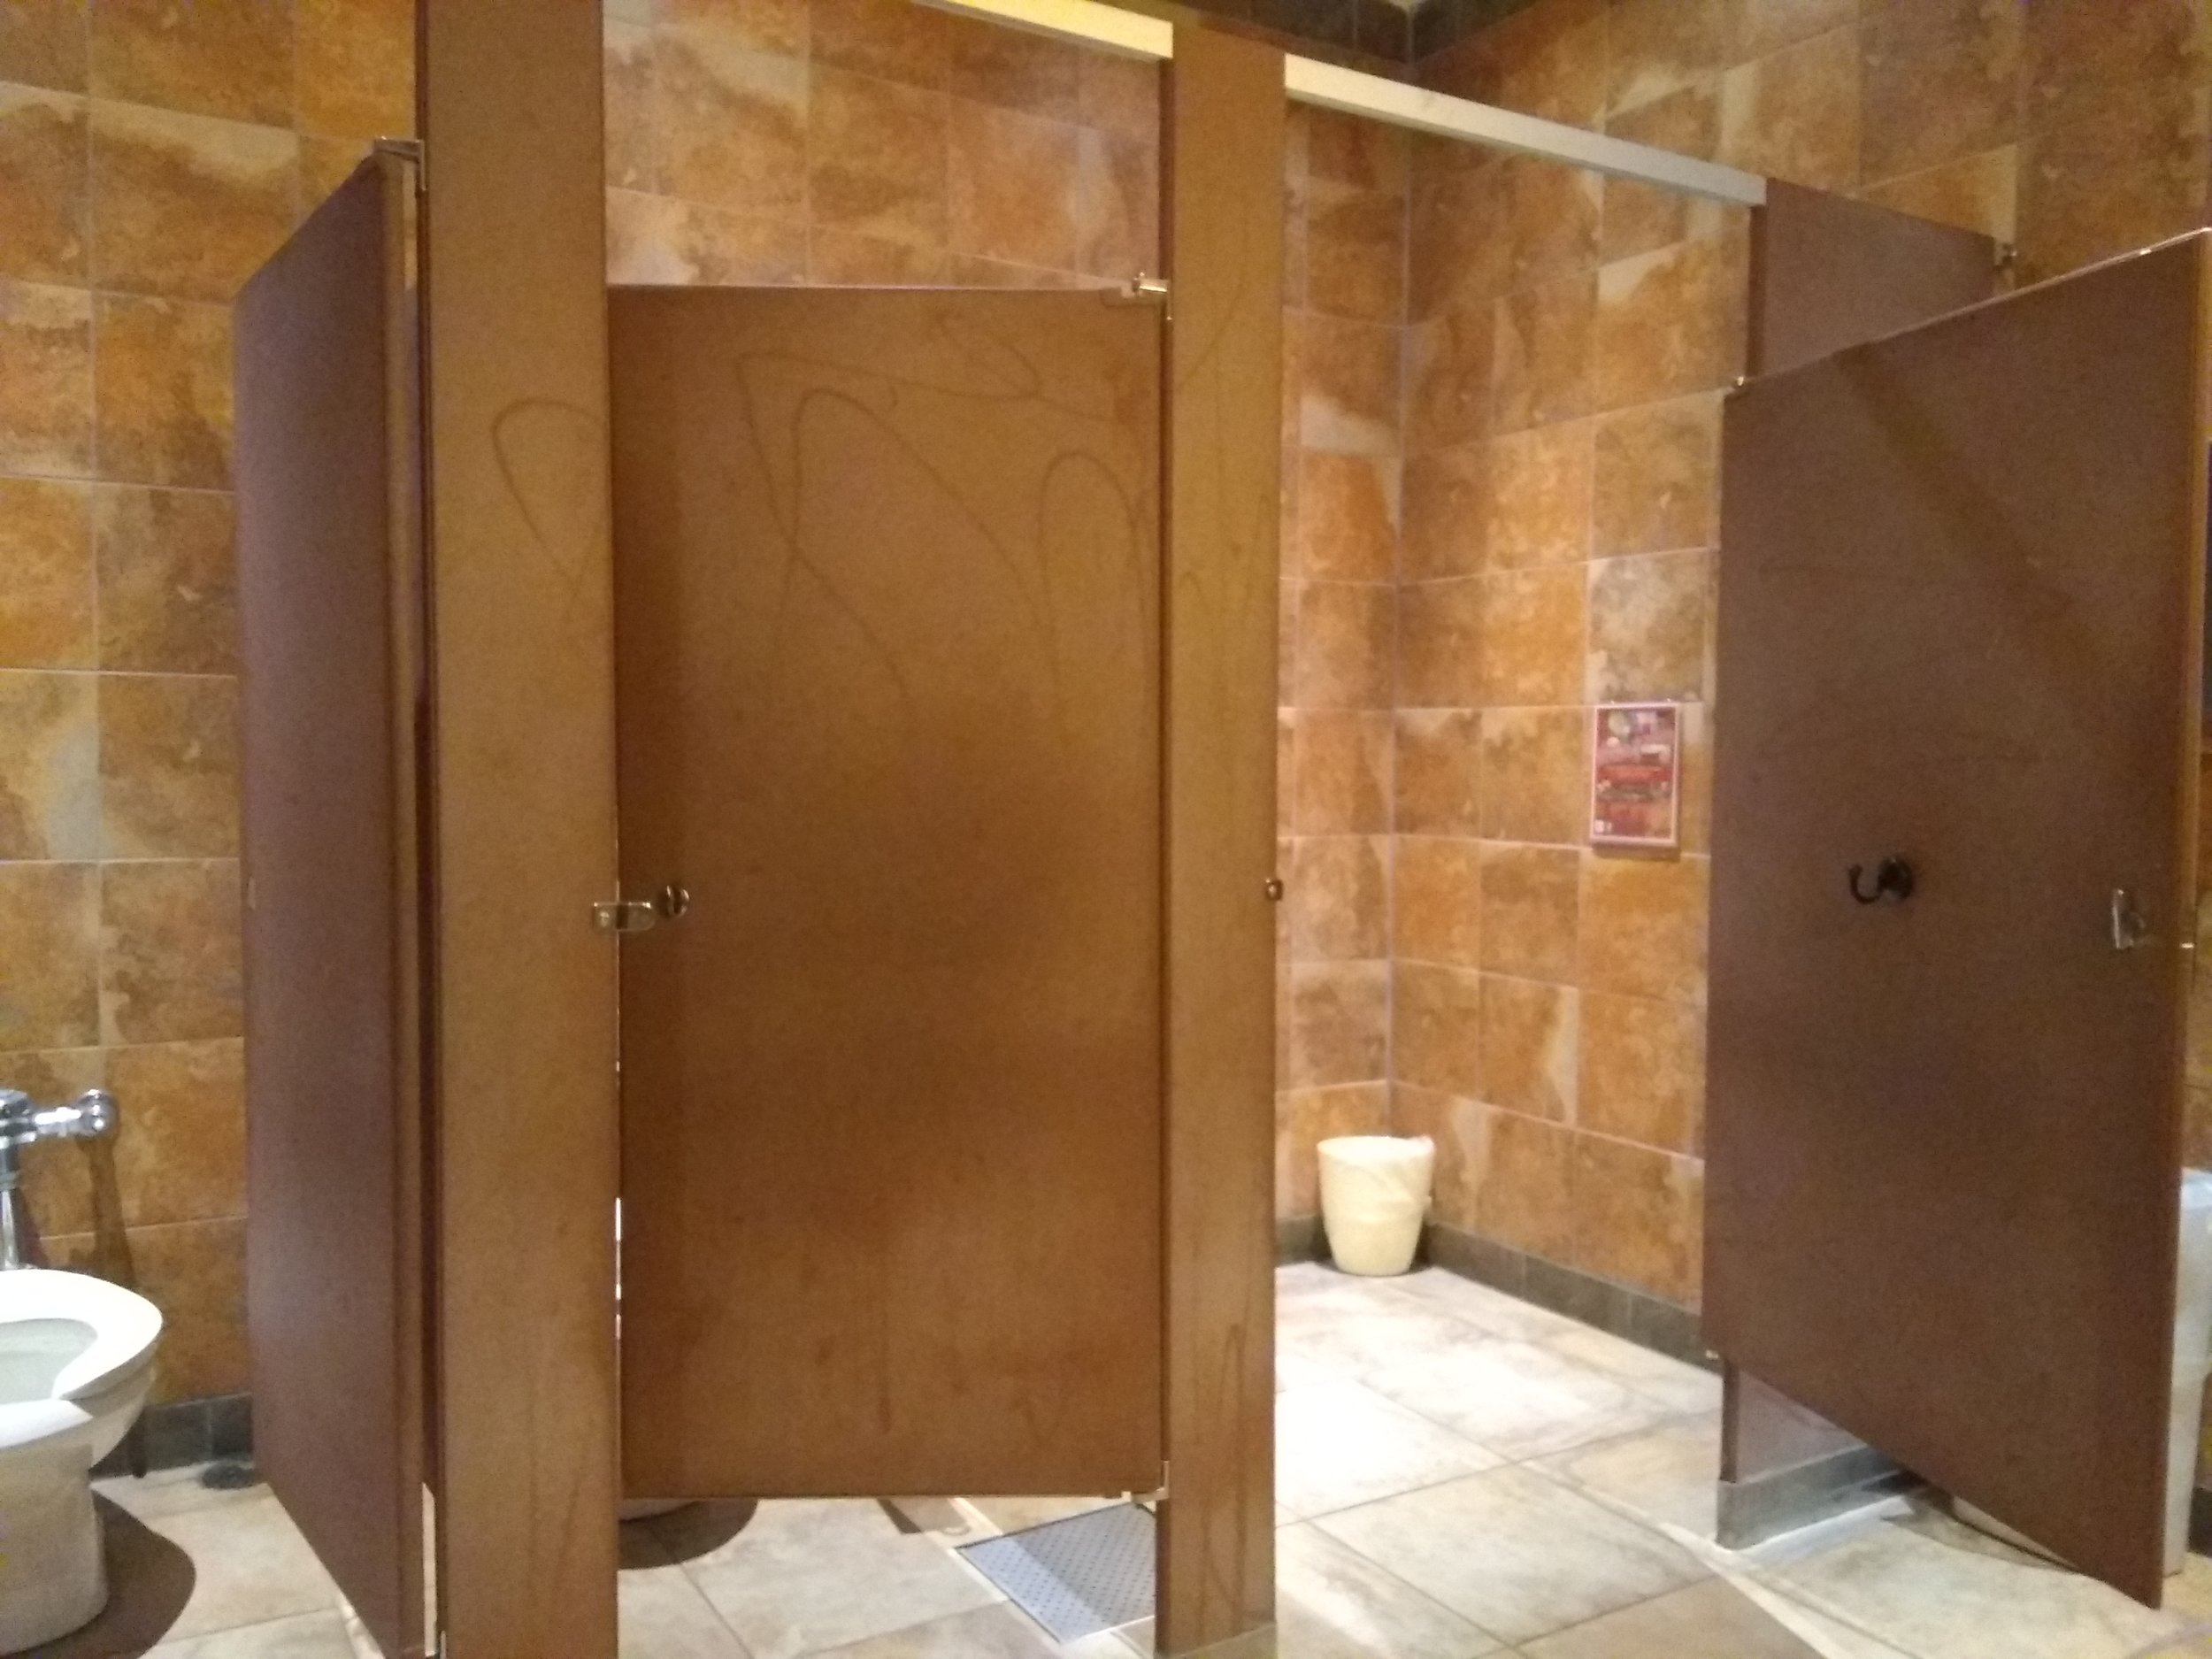 Picture of the entrance to the accessible washroom stall